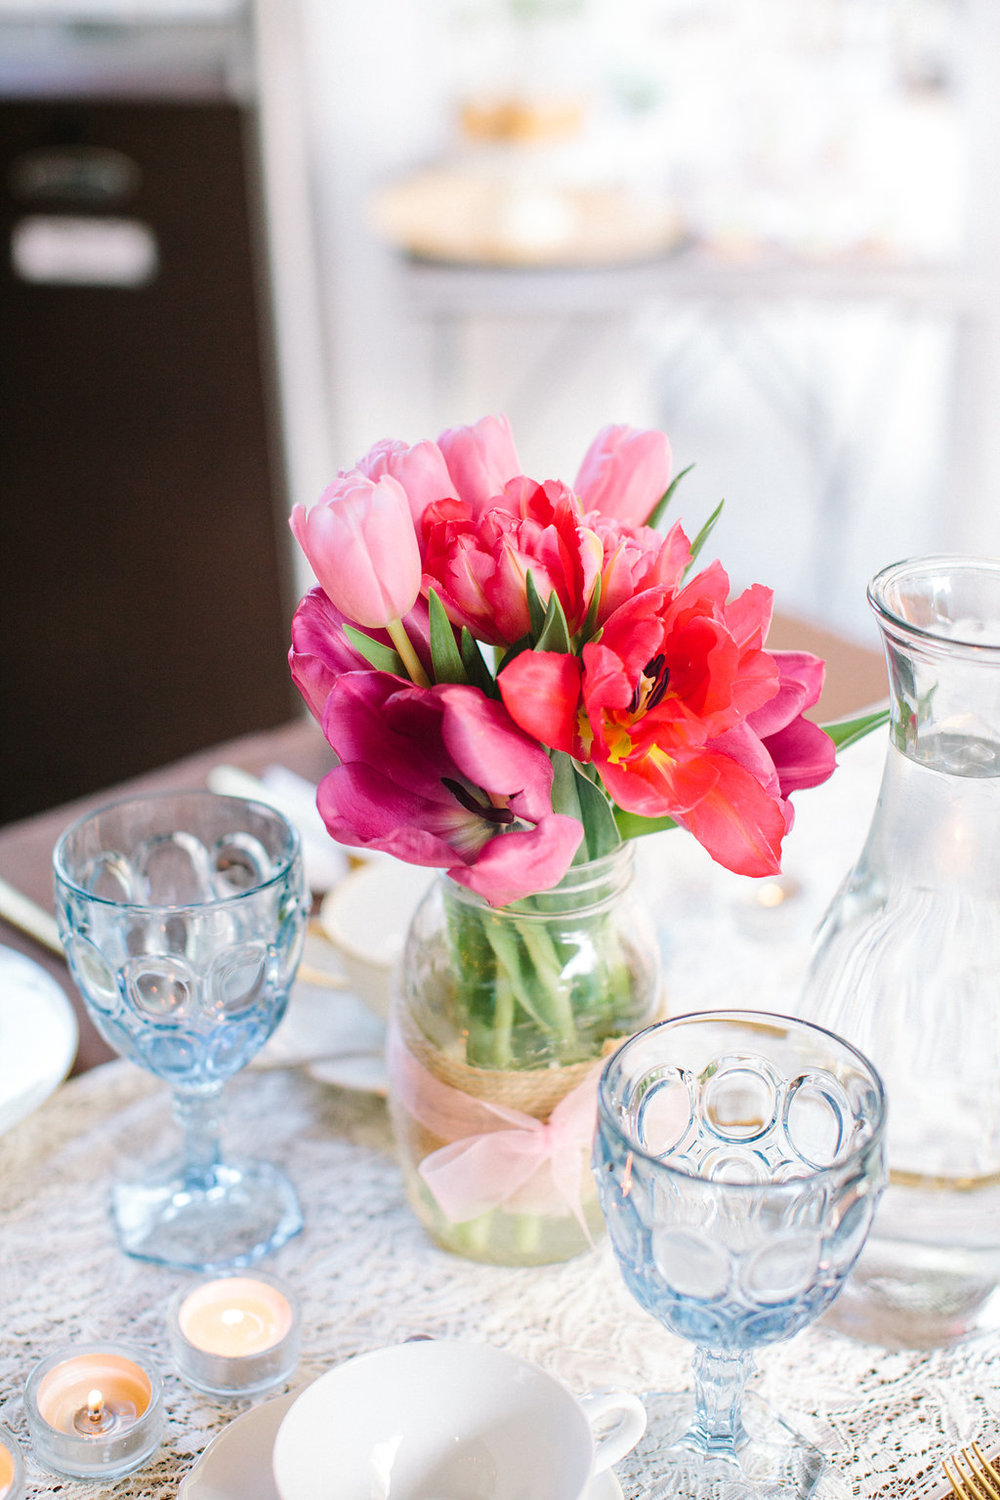 I have to say, I never recognized the beauty of tulips until this bridal shower!